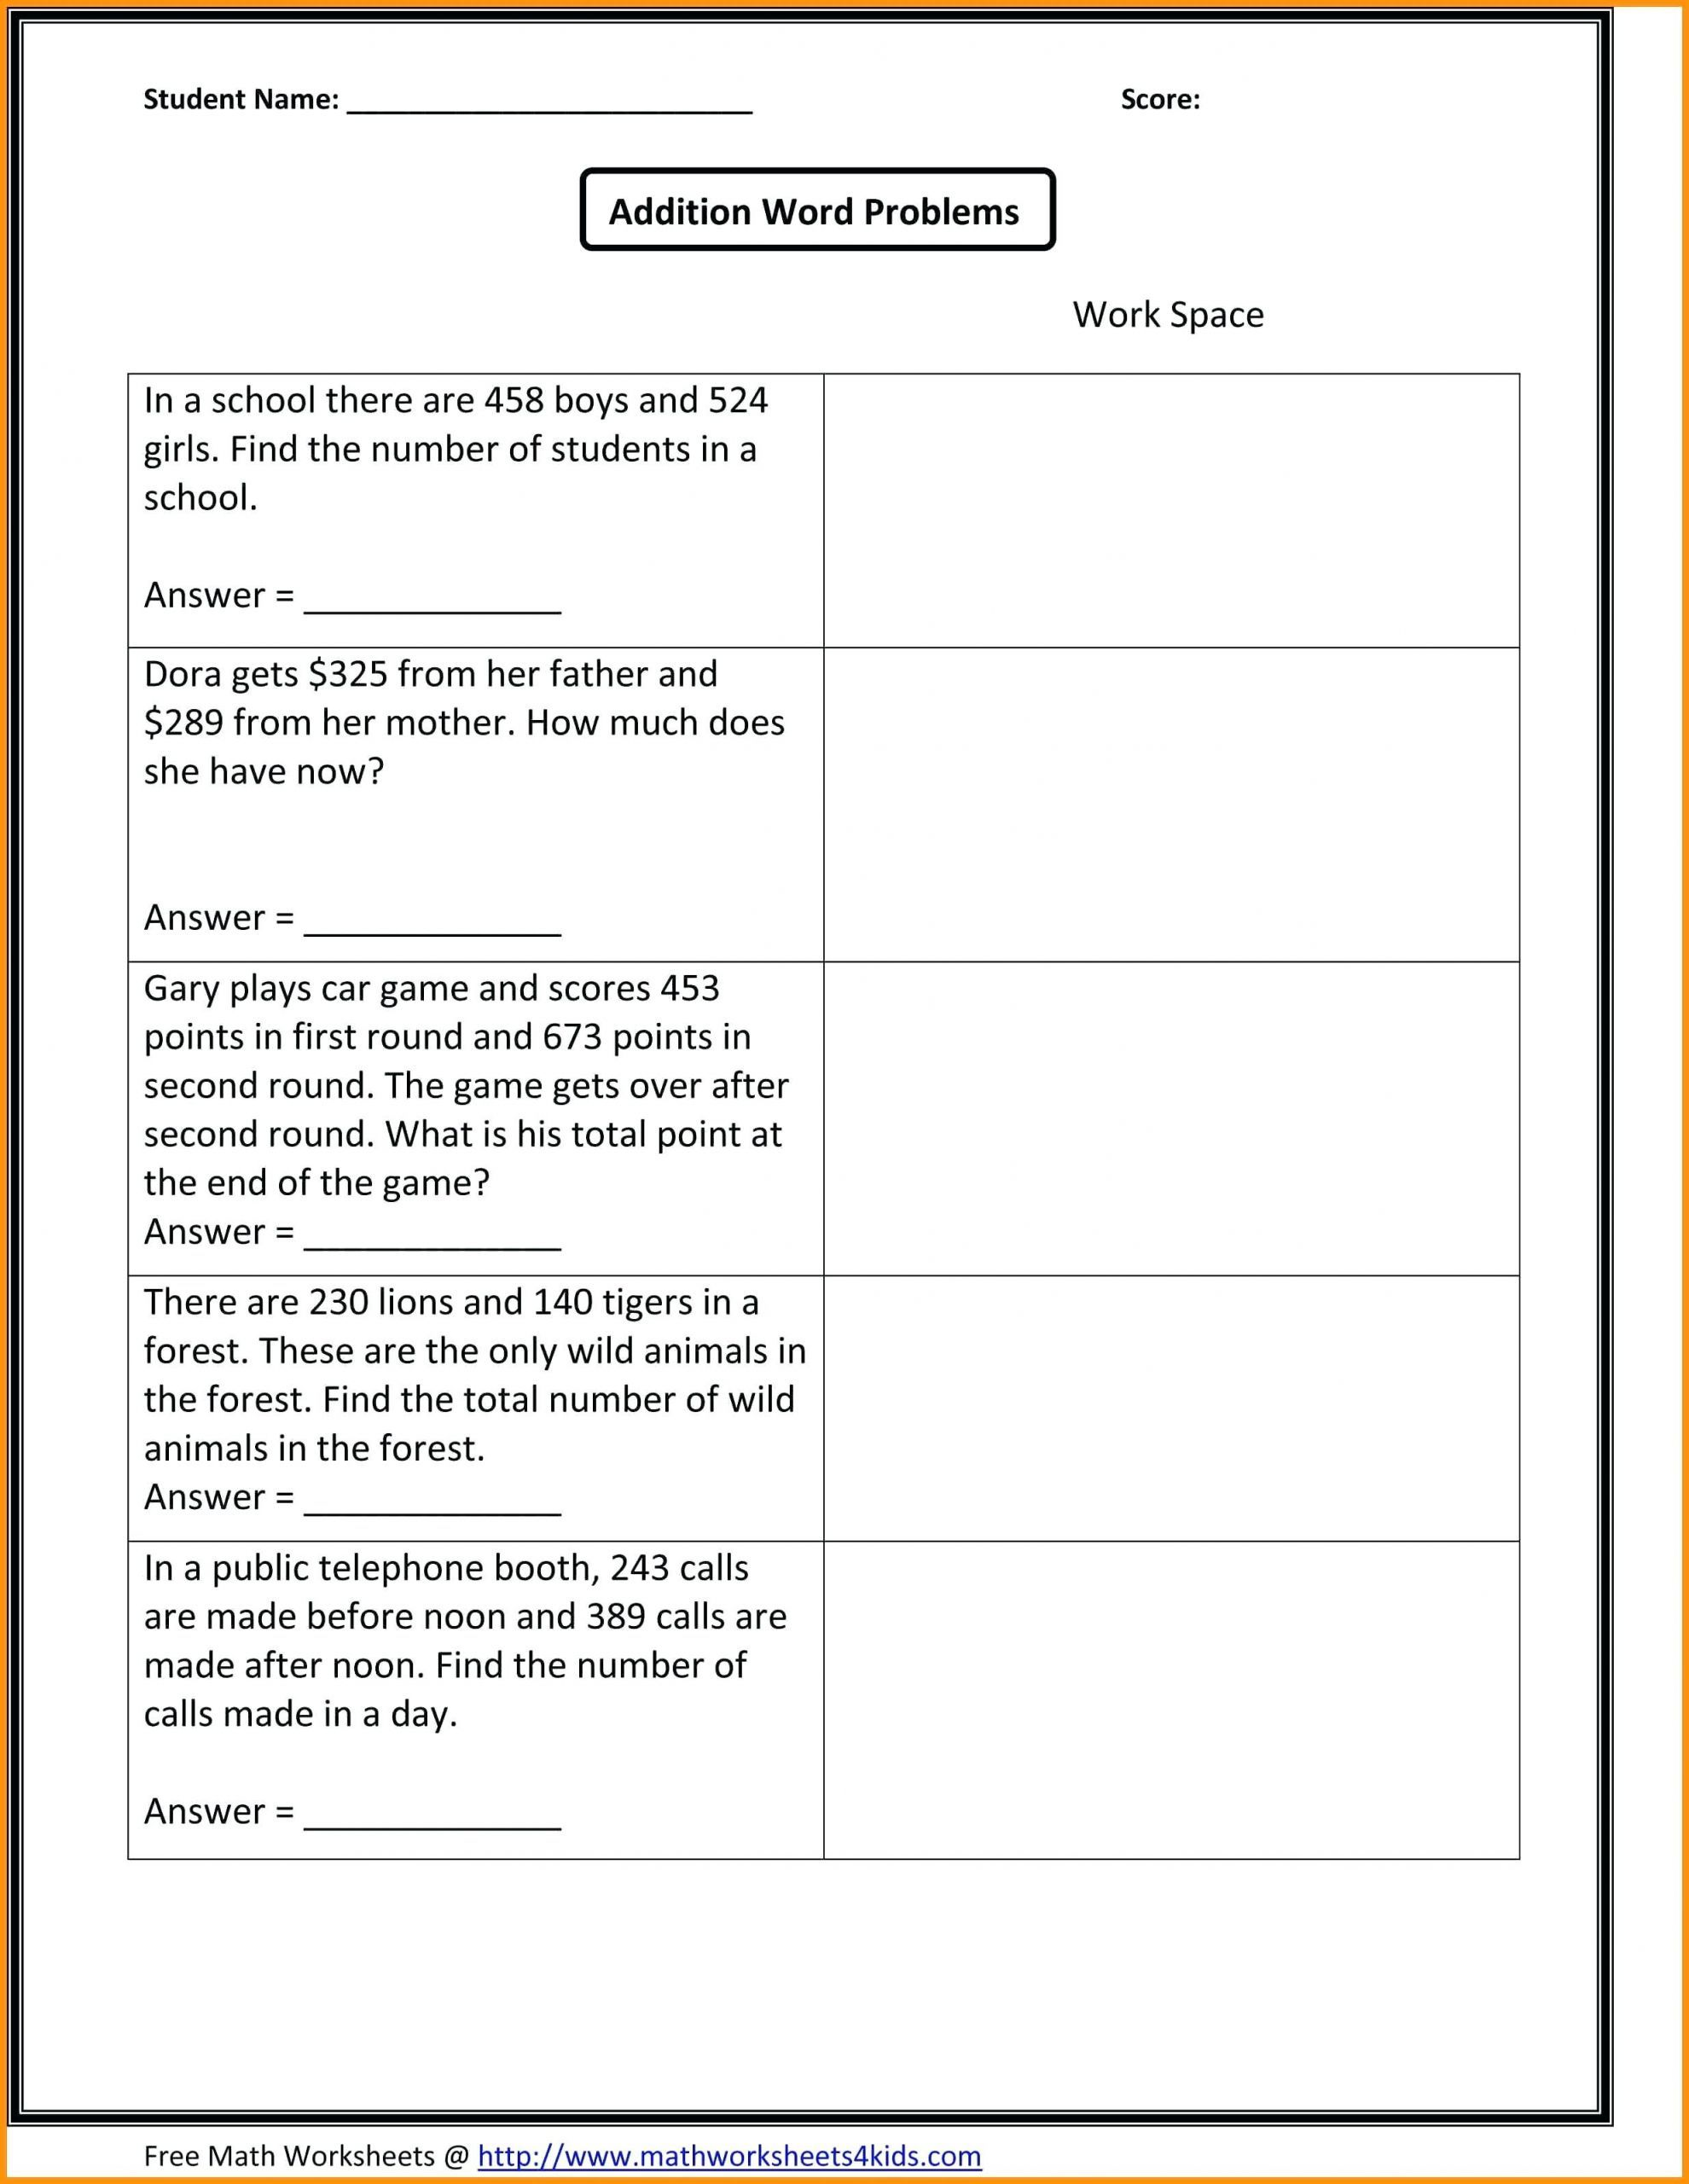 4 Free Math Worksheets Second Grade 2 Addition Adding 3